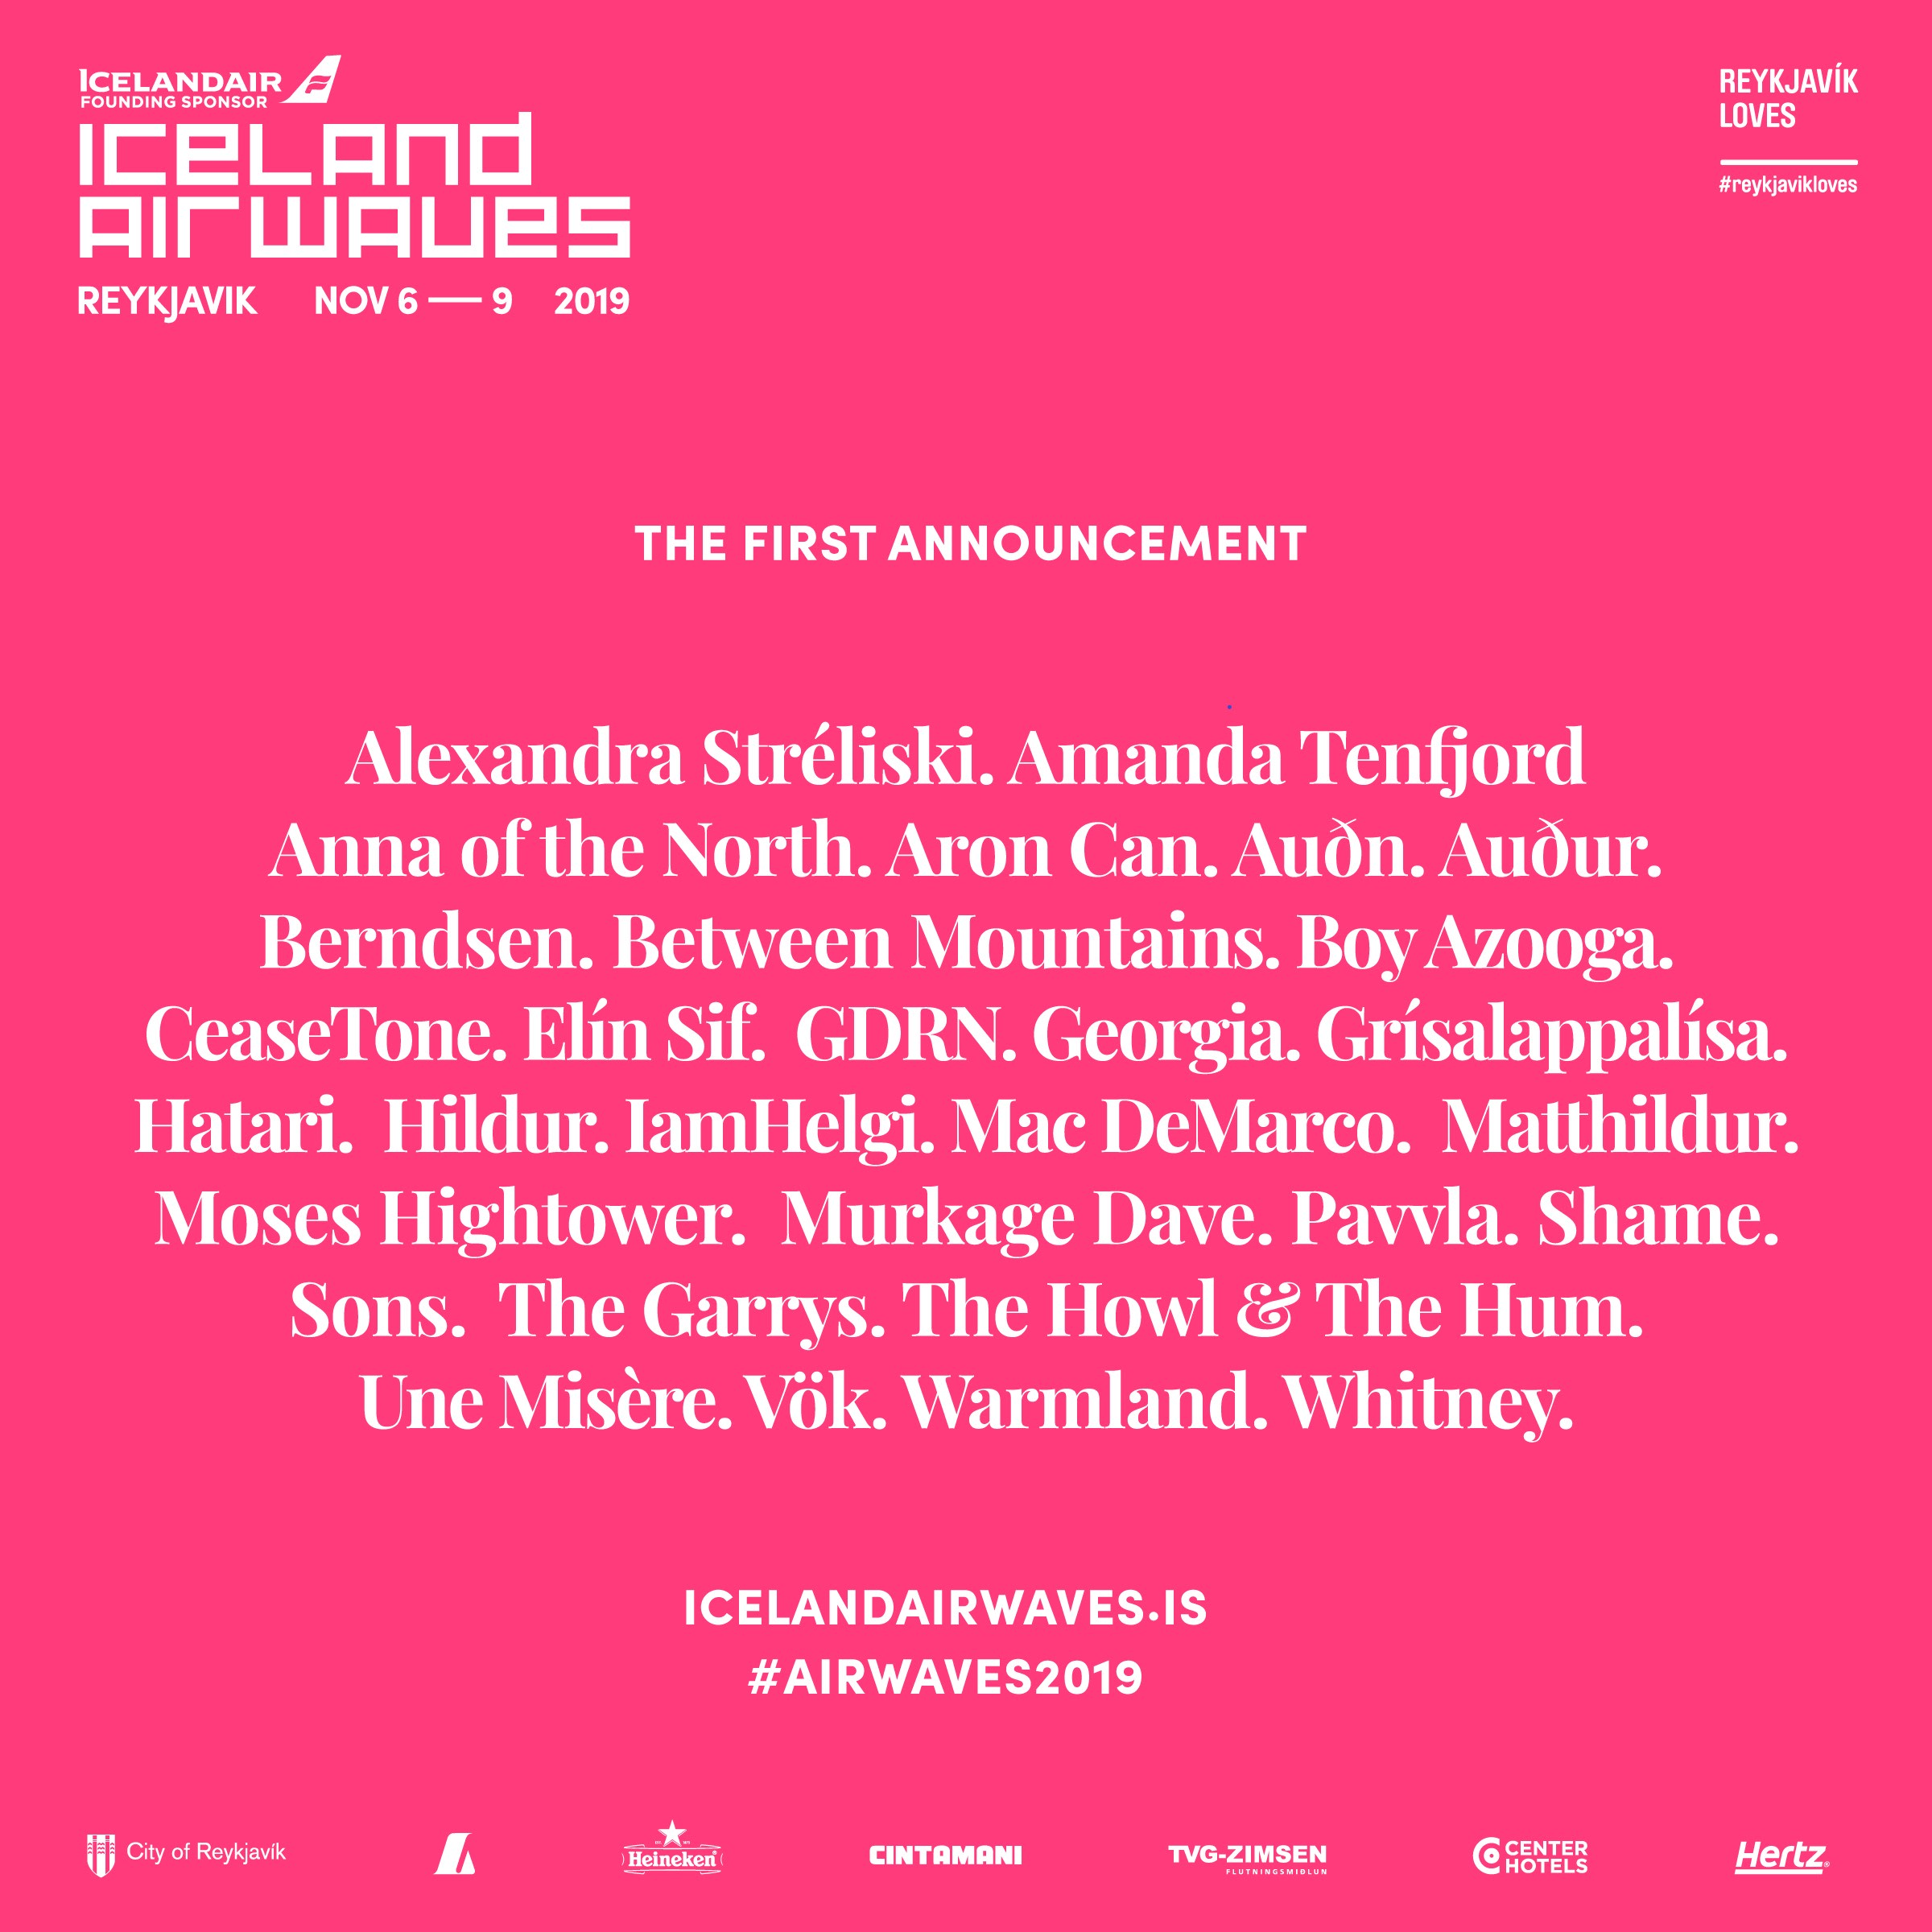 The first announcement and lineup poster for the Iceland Airwaves 2019 show